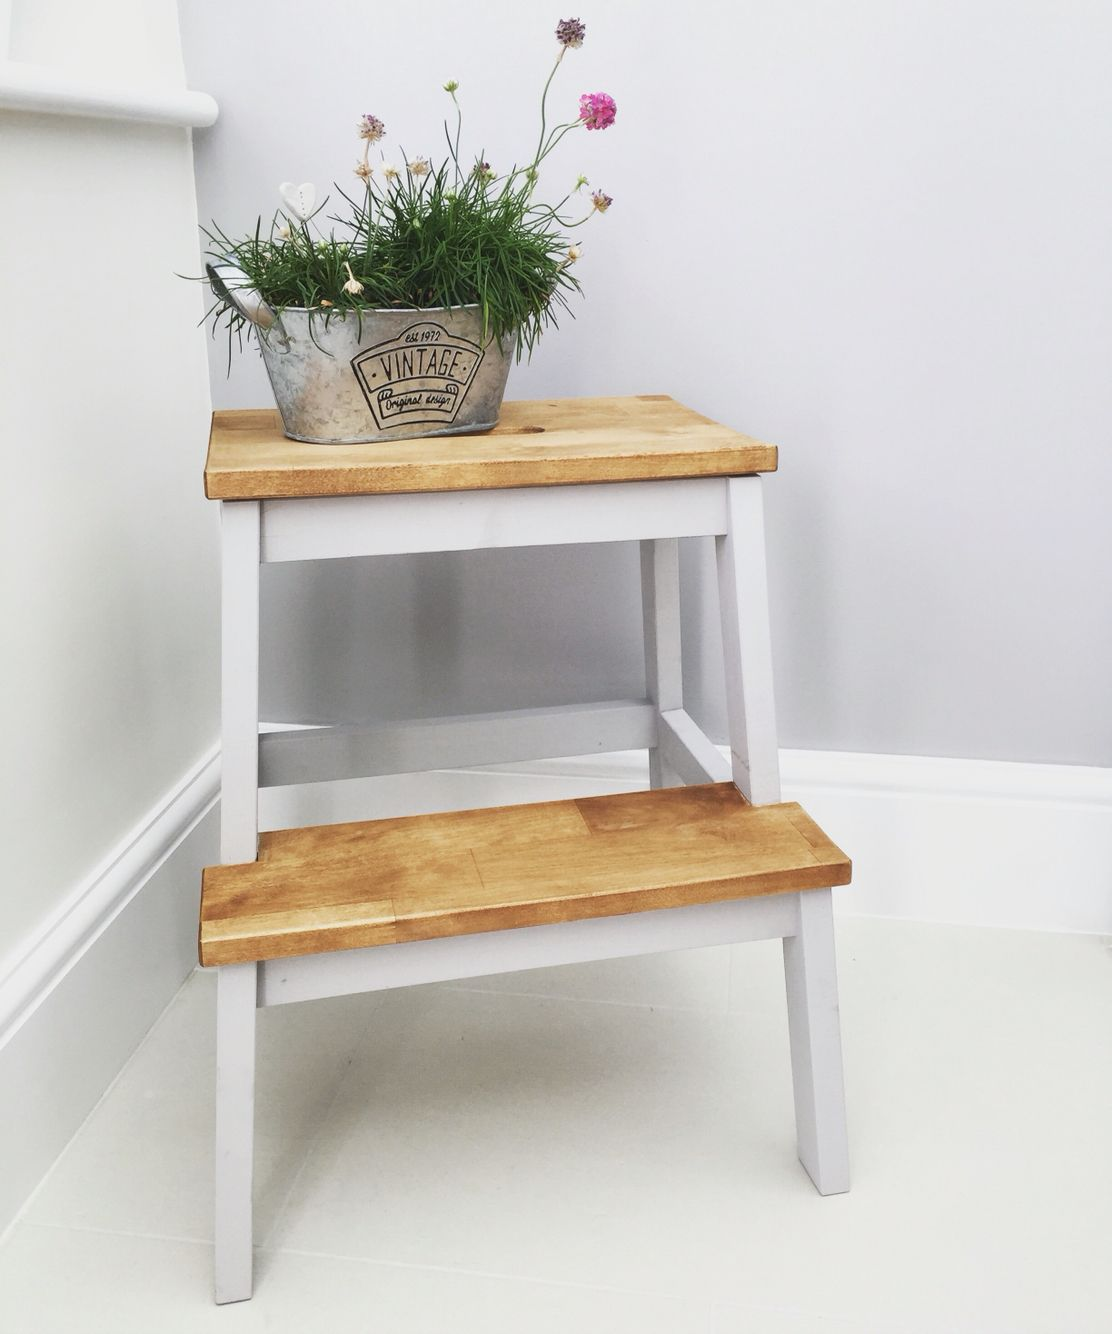 My IKEA Hack of a Bekvm Step Stool! Painted in Dulux Chic Shadow & the